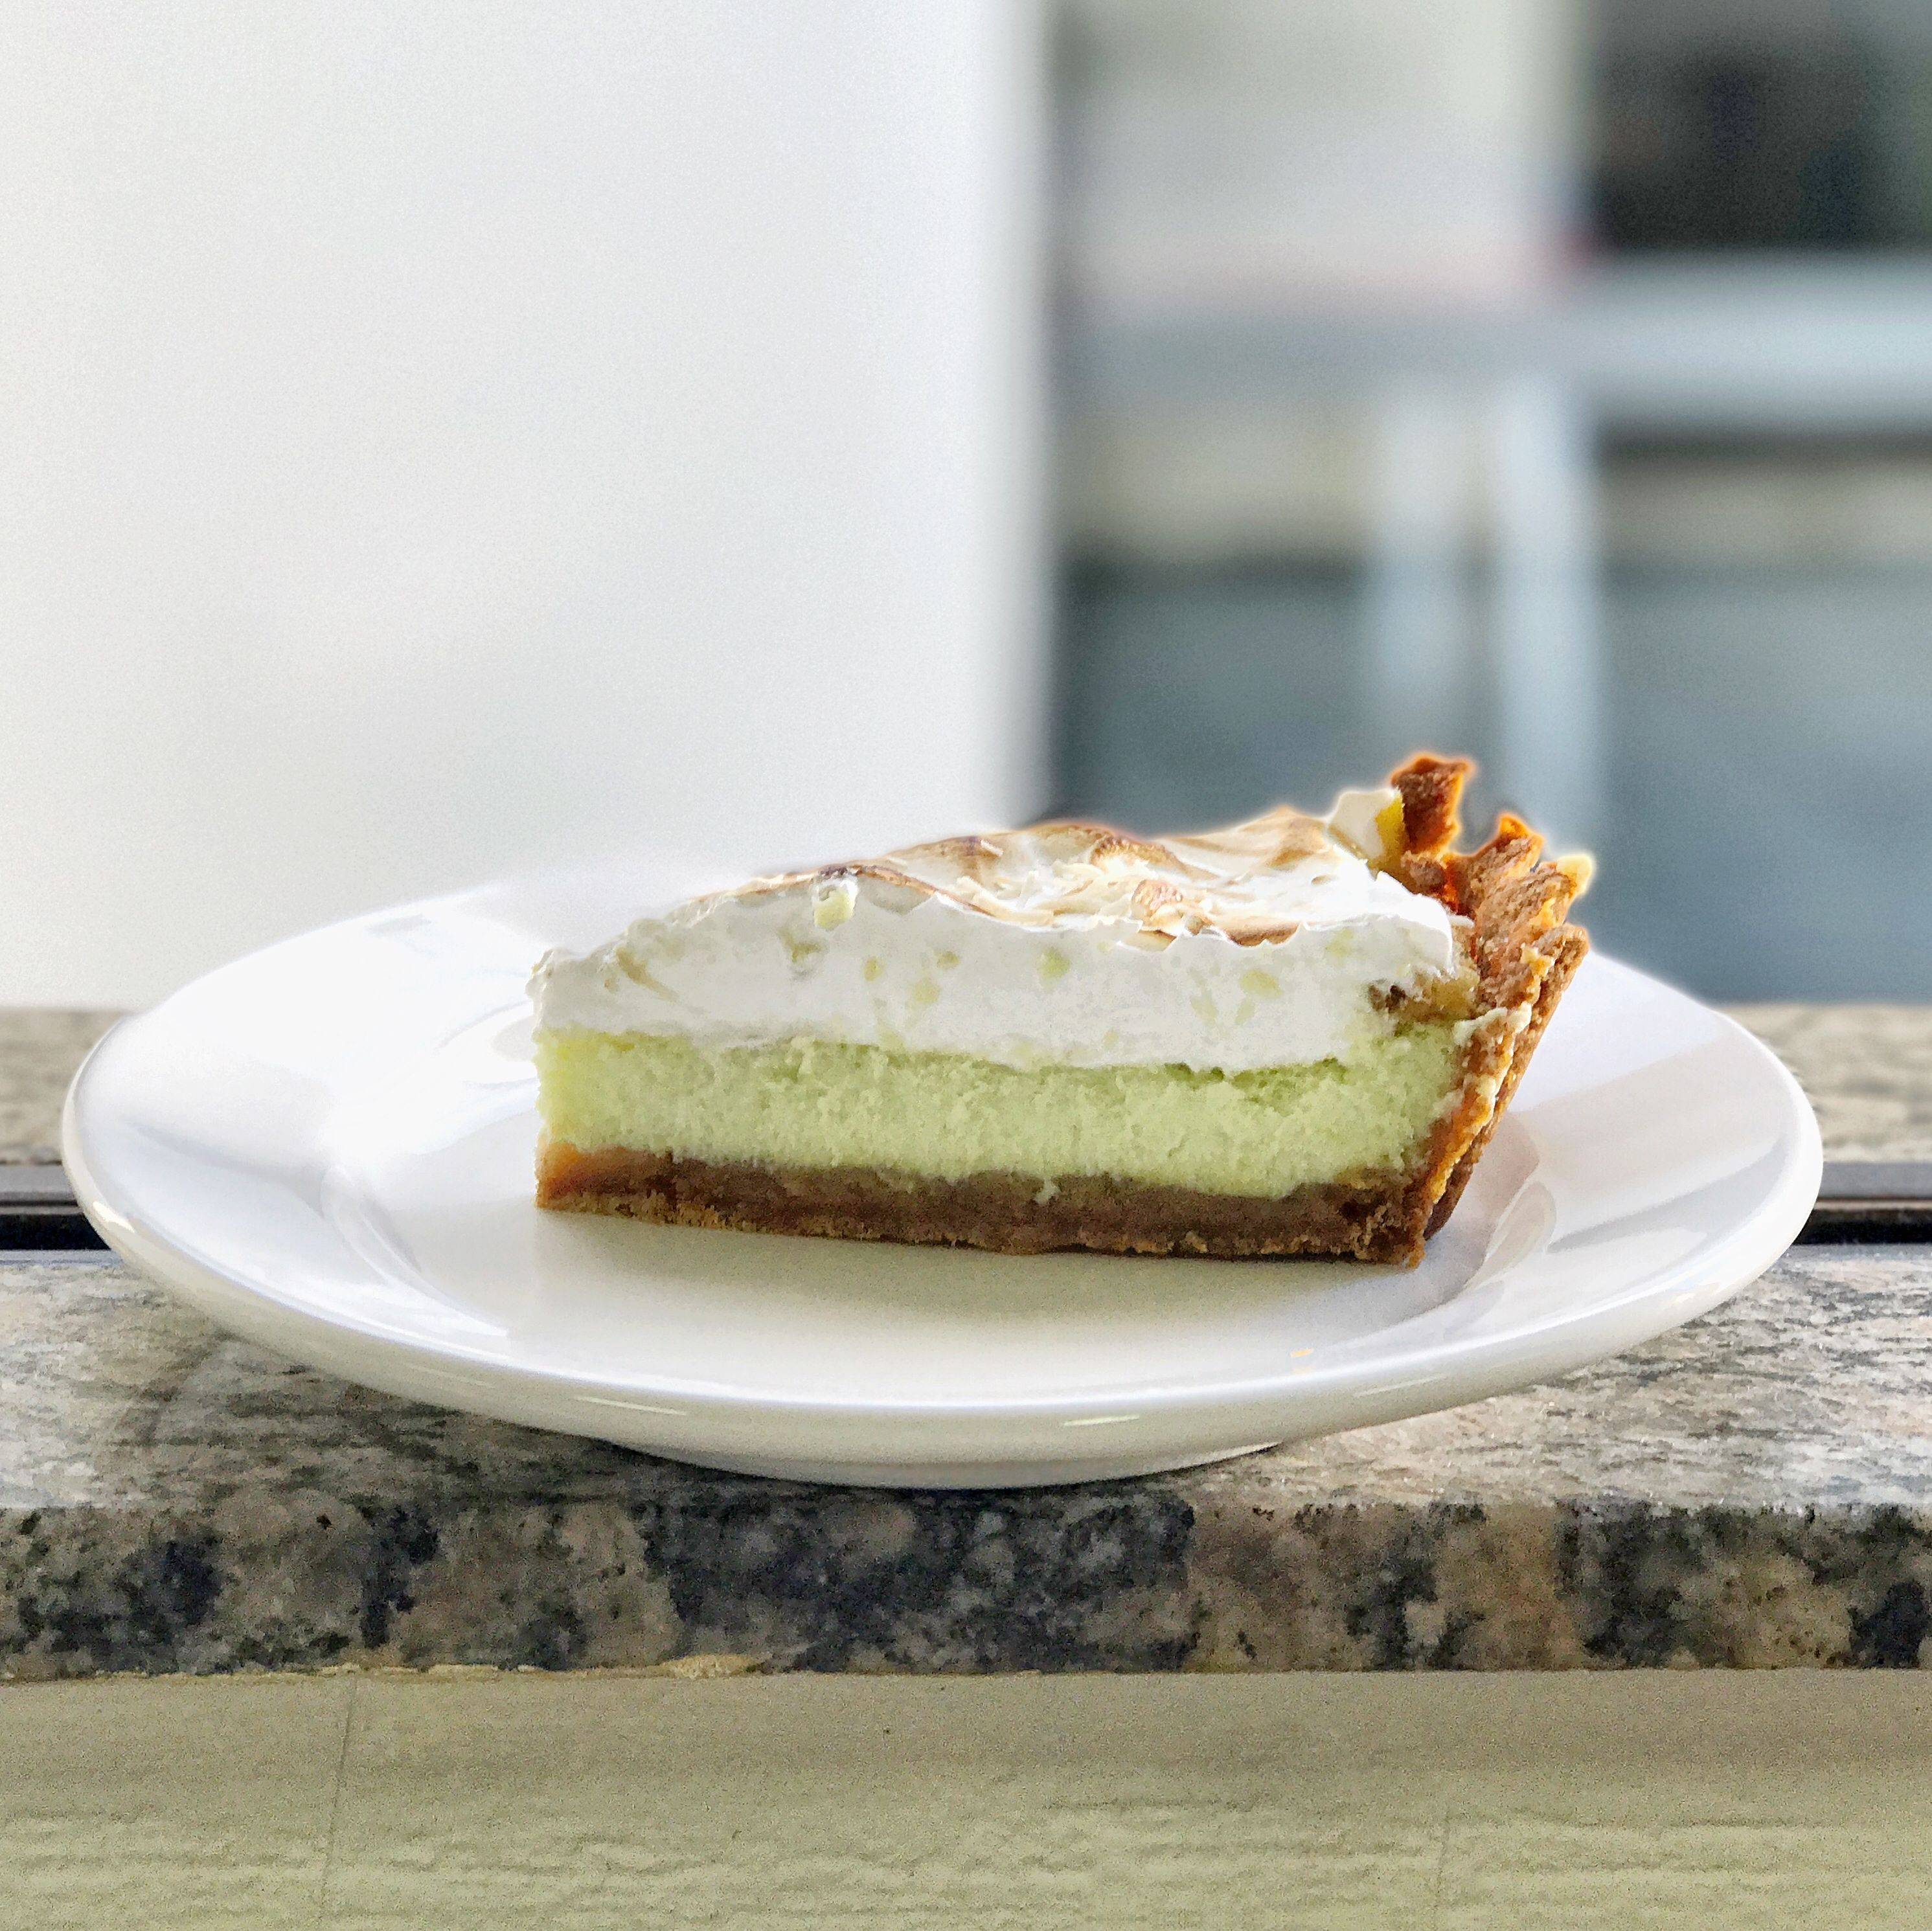 [Homemade] coconut key lime pie with marshmallow on top